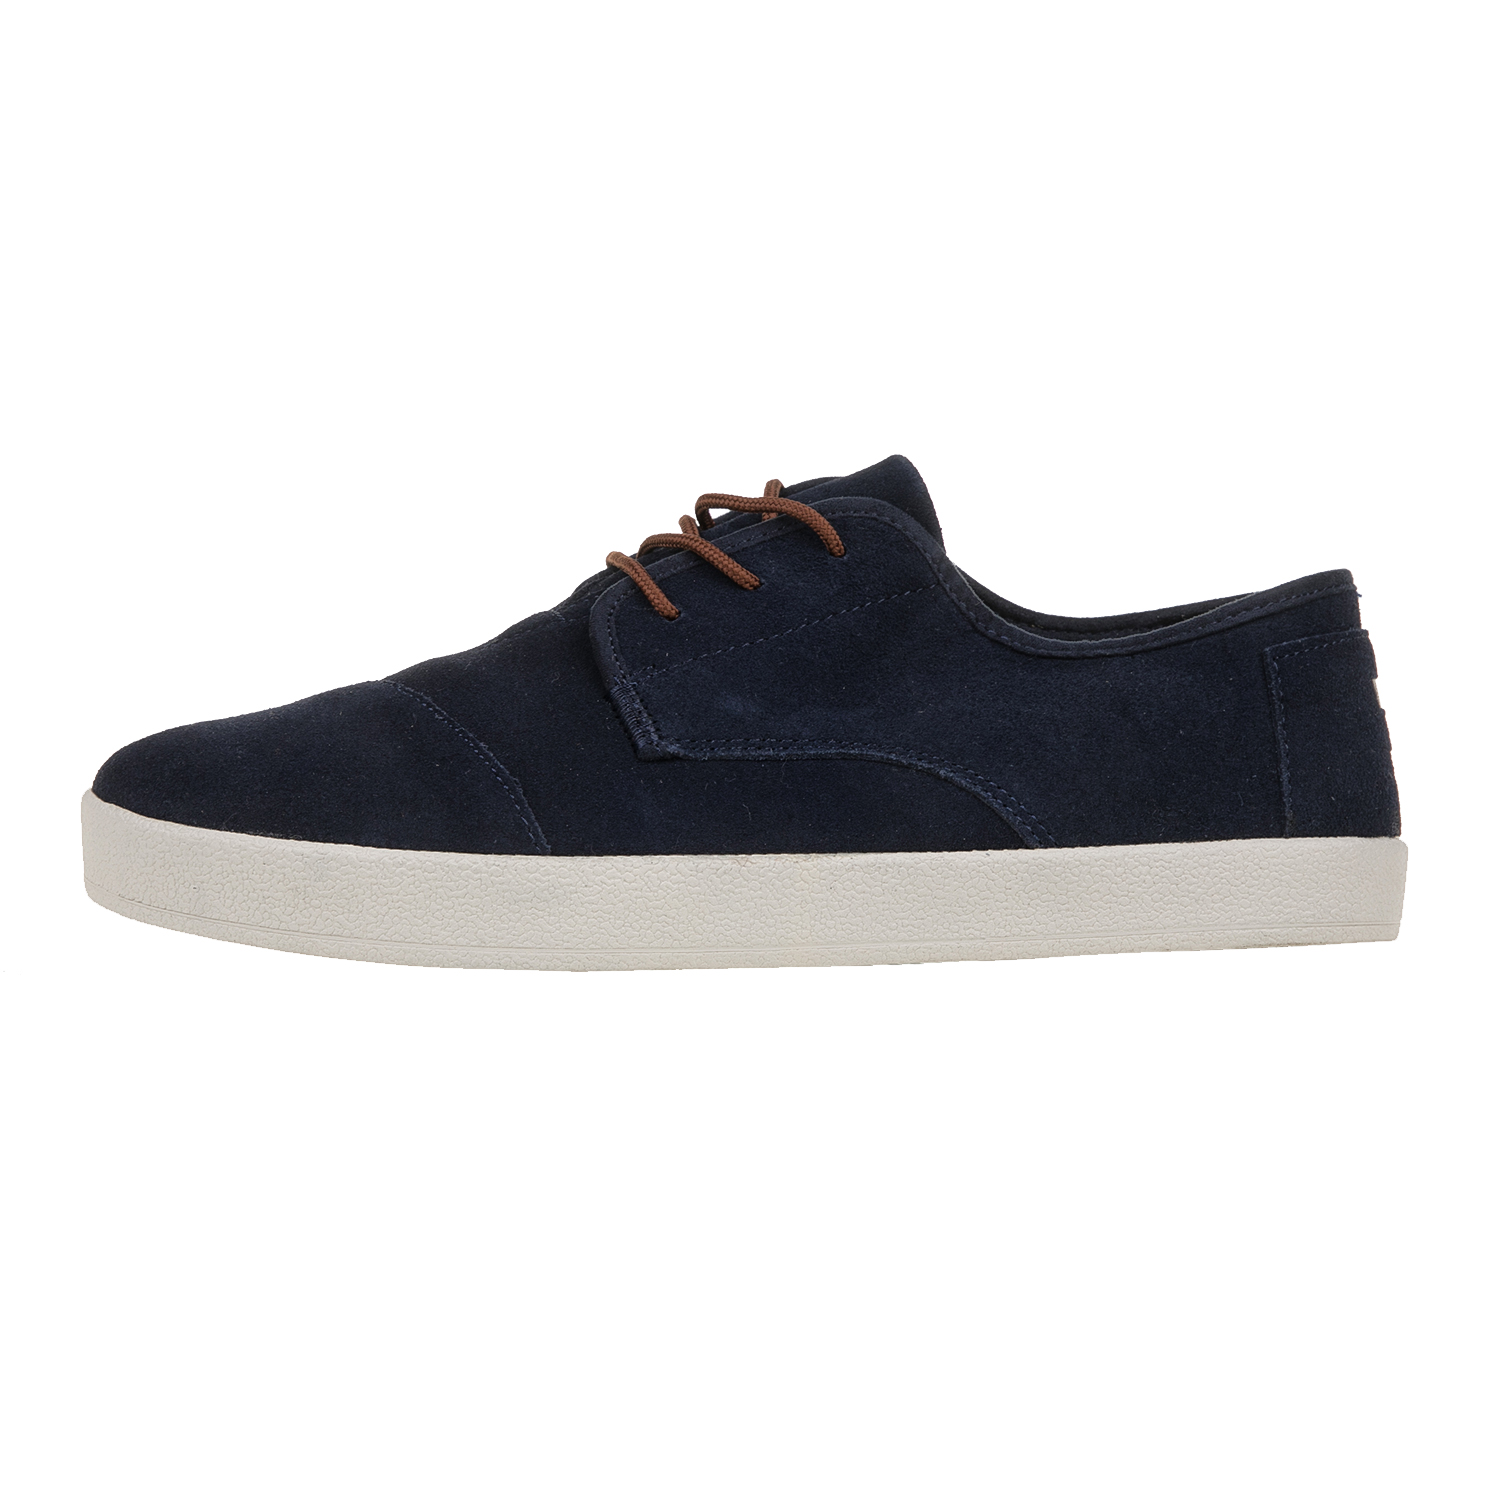 TOMS – Ανδρικά σουέντ sneakers TOMS μπλε σκούρα